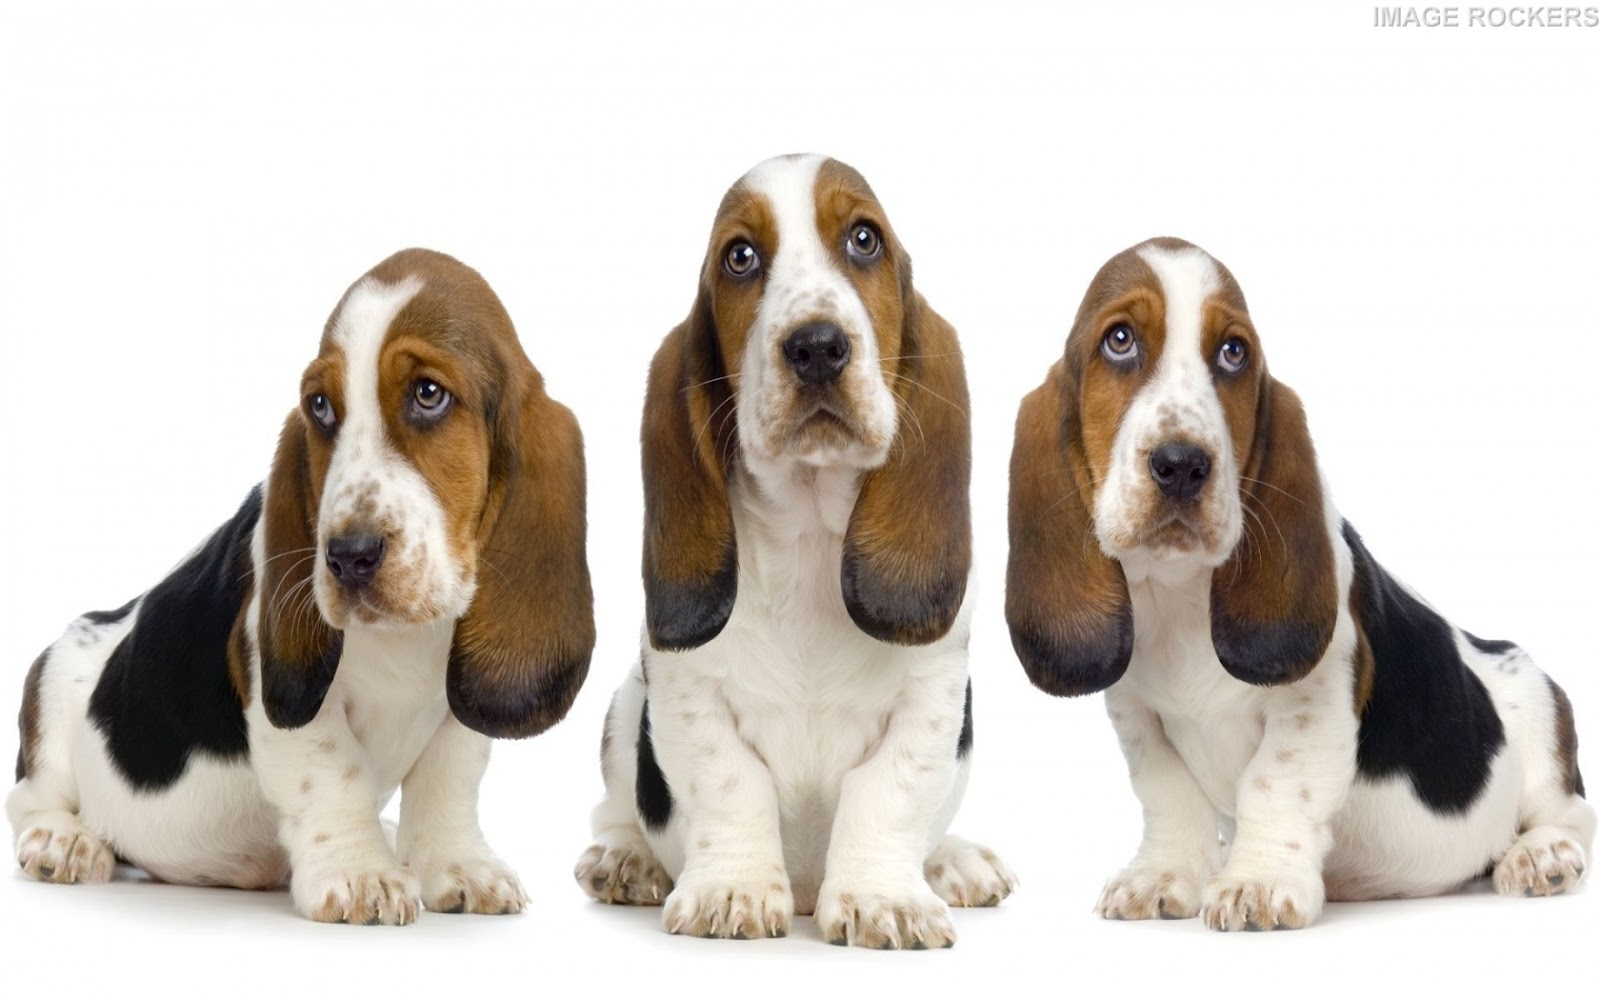 LATEST WALLPAPERS: Basset Hound dogs wallpapers, Dogs ...